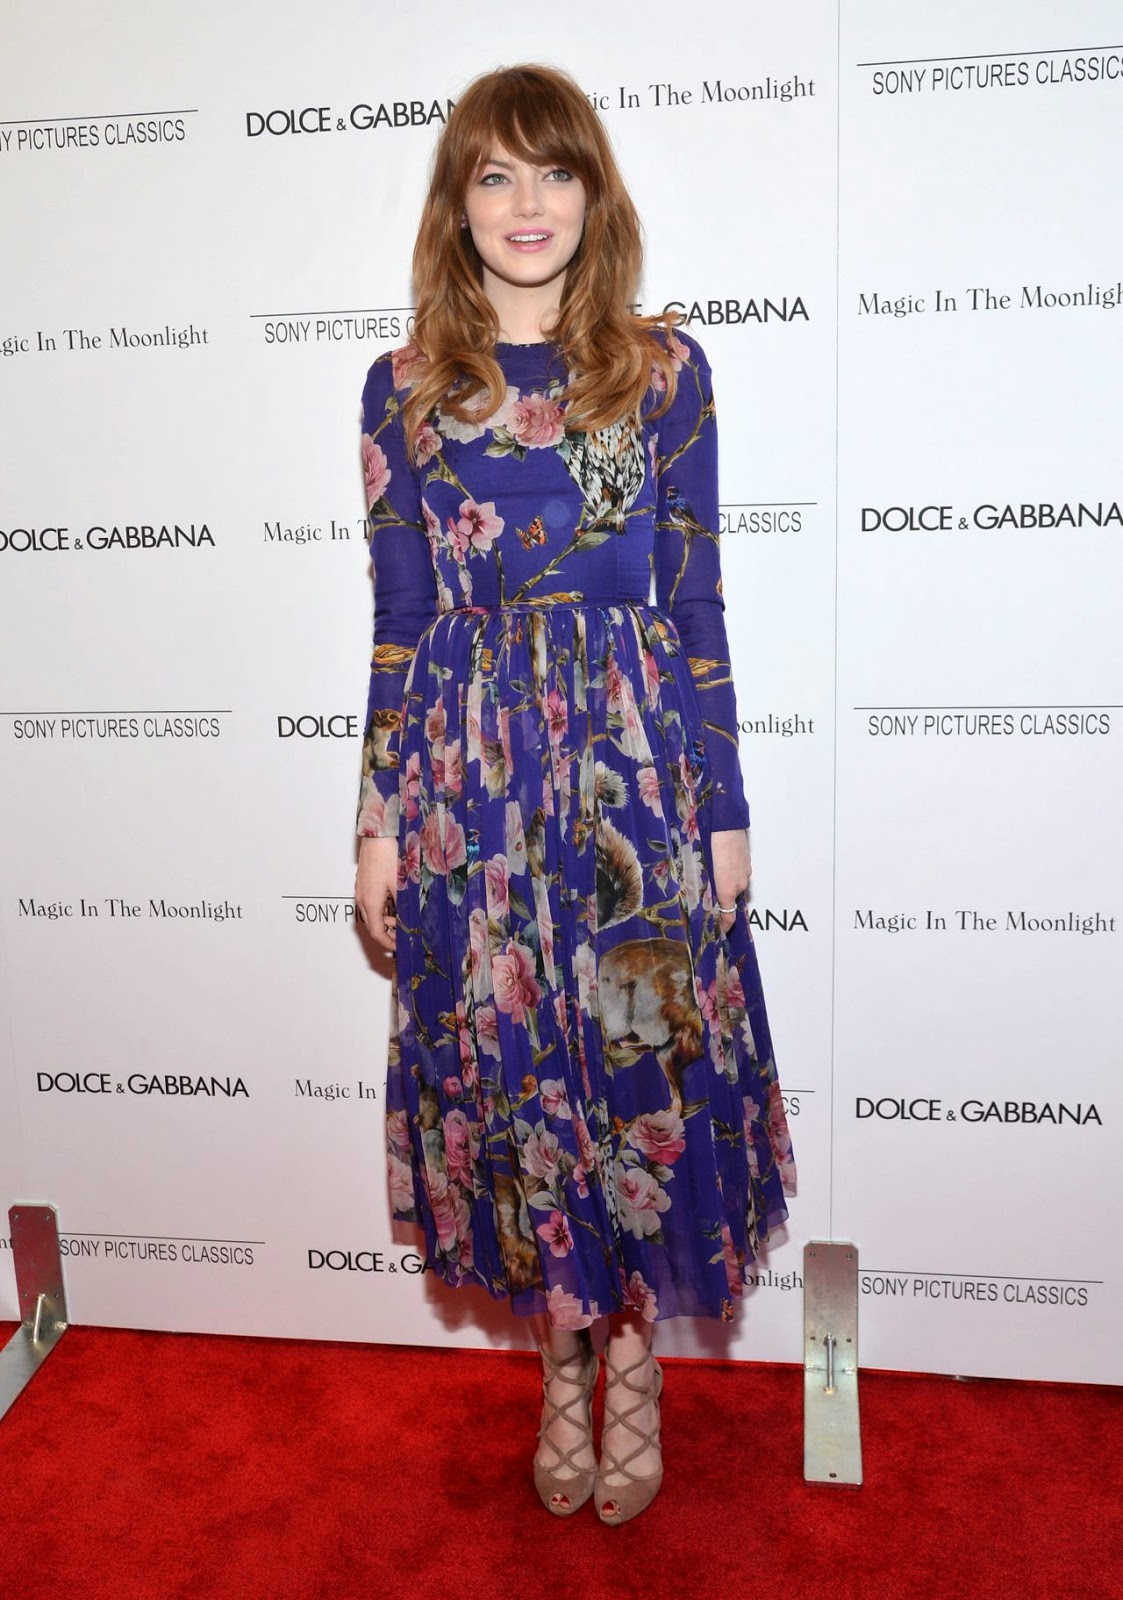 Emma Stone is charming in Dolce & Gabbana at the 'Magic in the Moonlight' NY Premiere